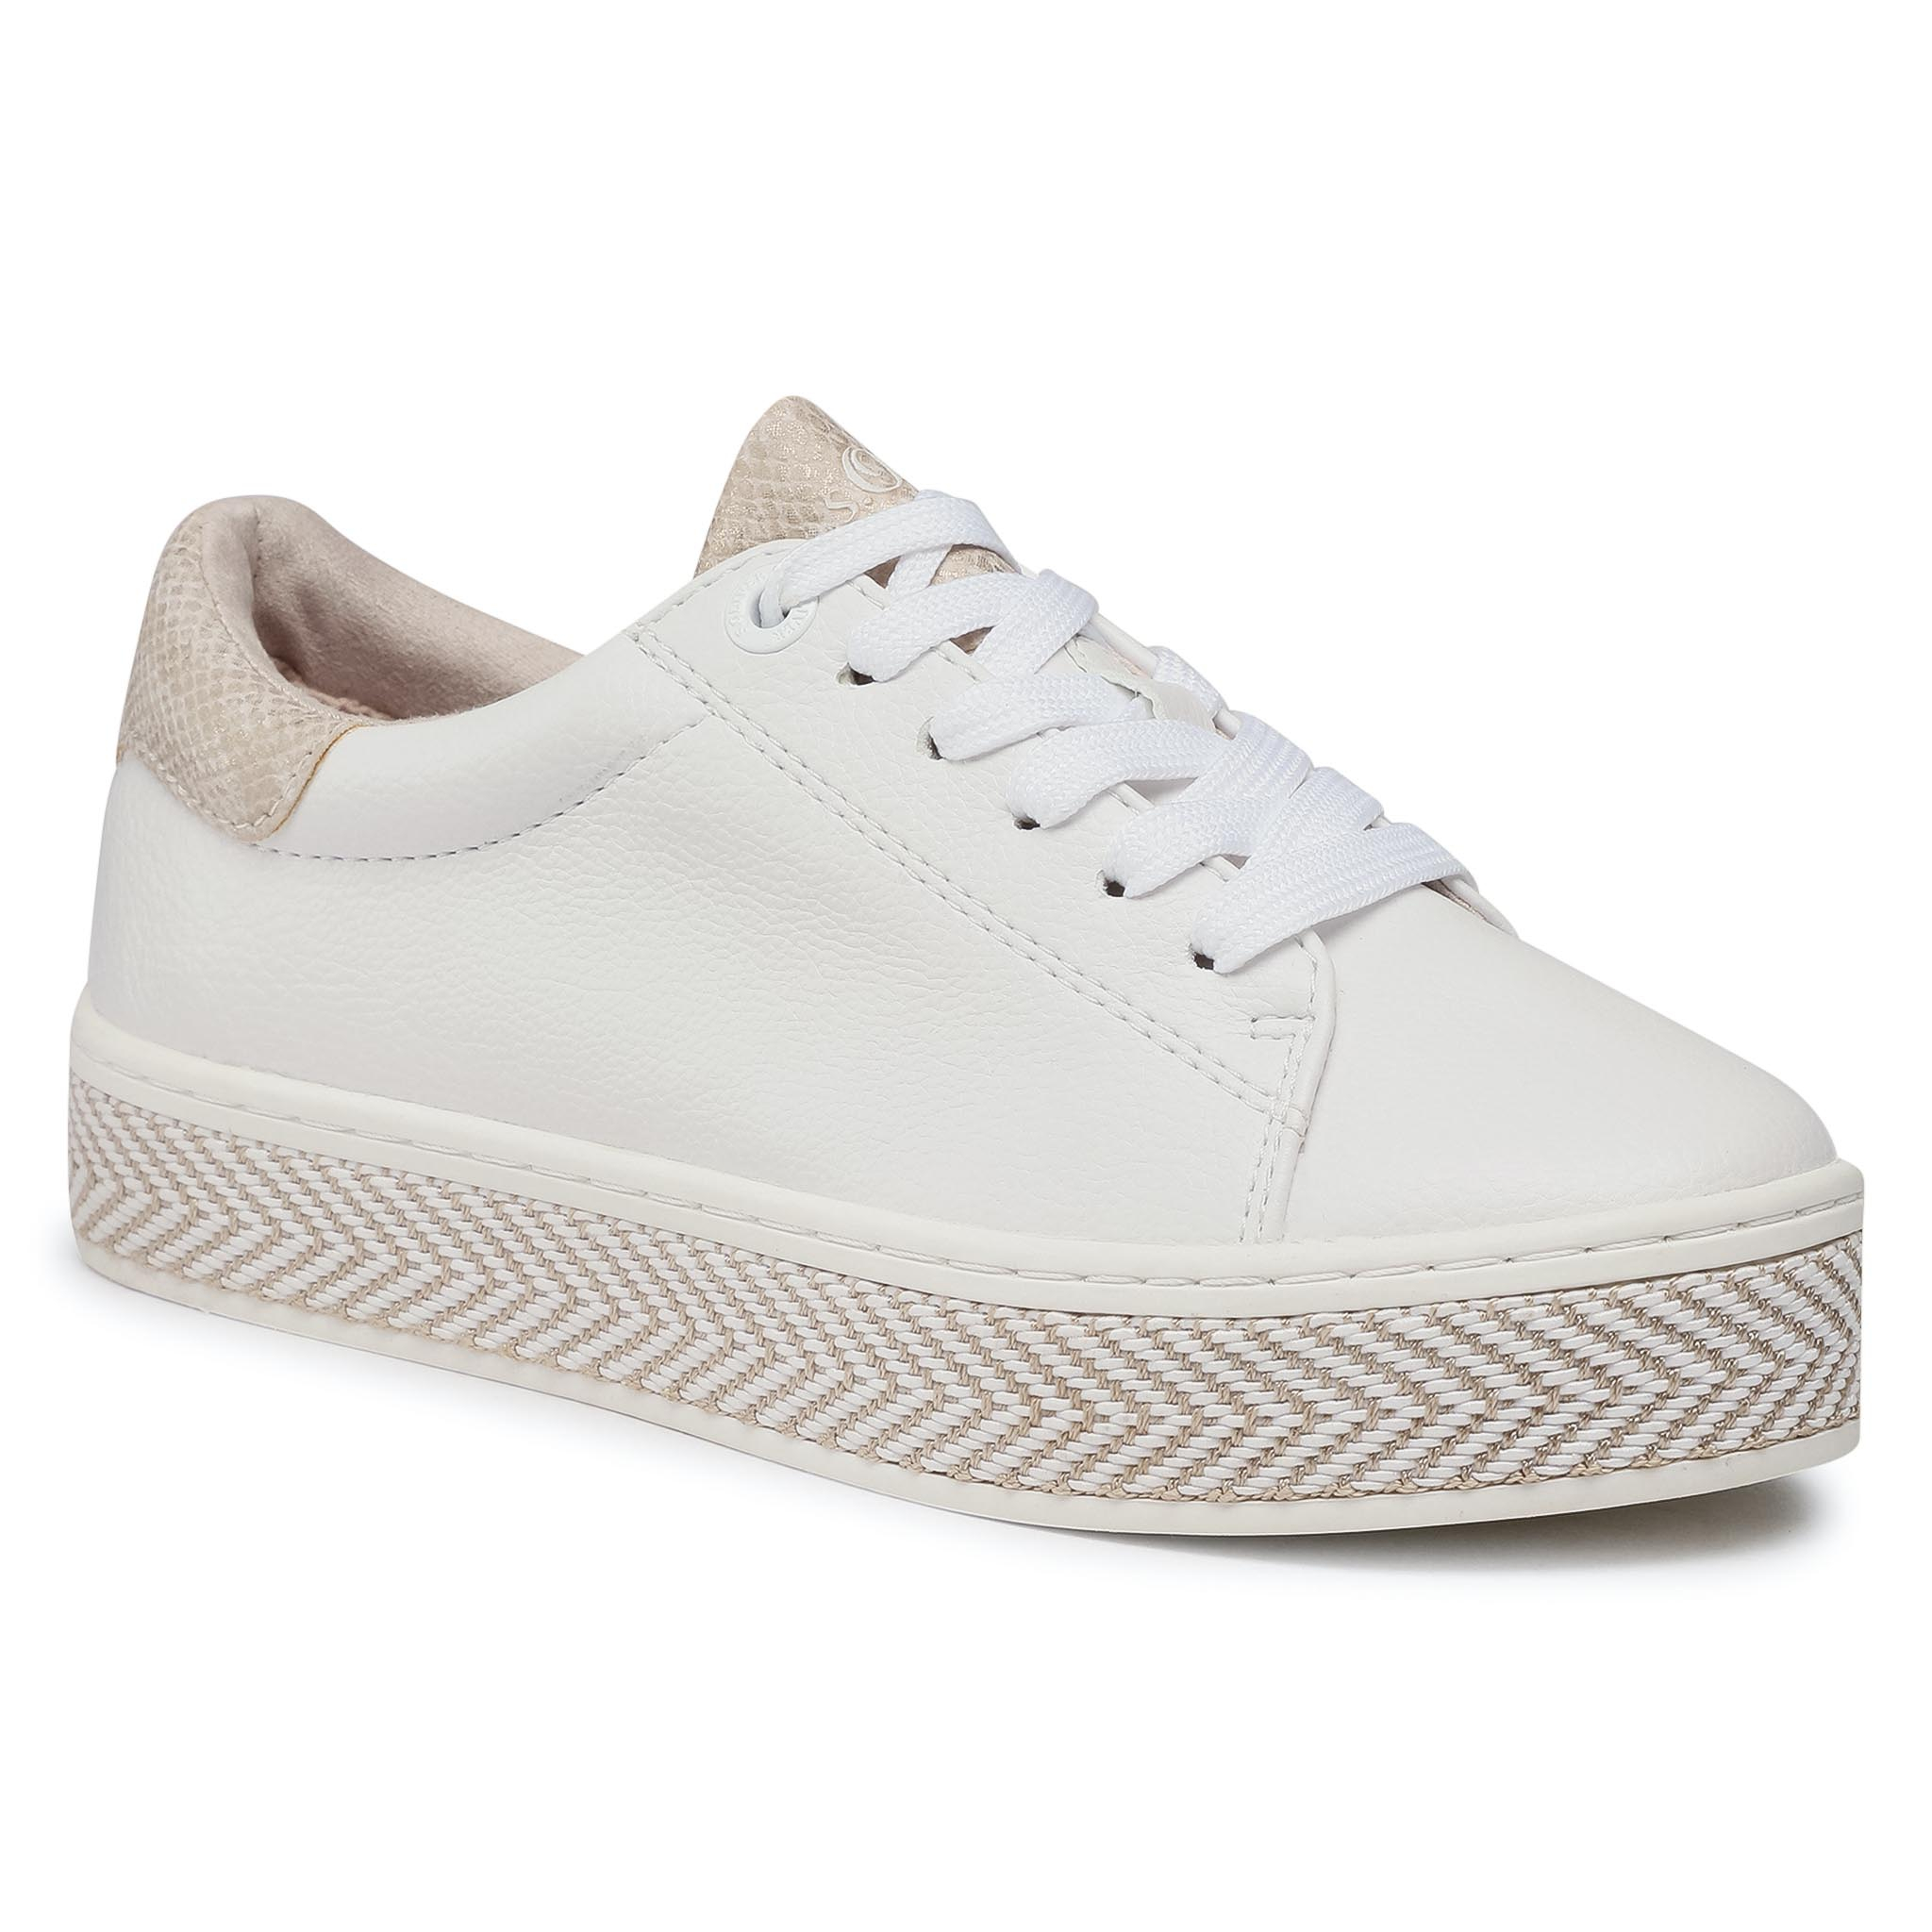 Sneakers S.OLIVER - 5-23637-26 White Comb. 110